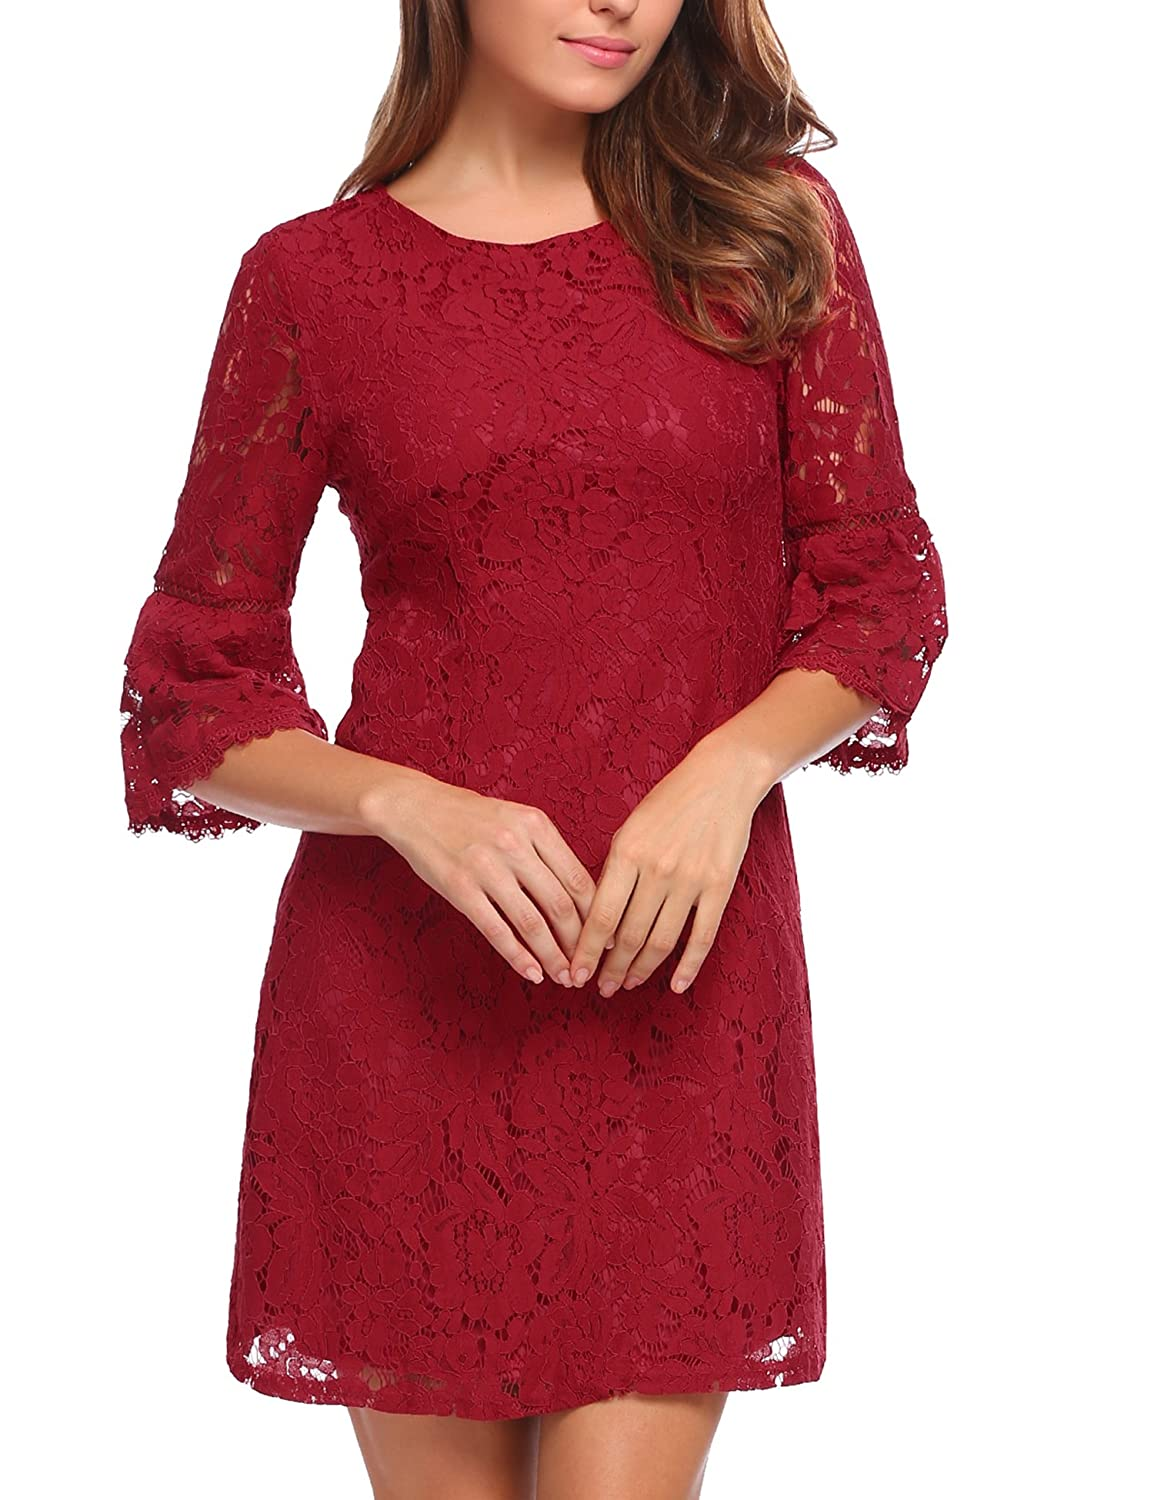 16c2796915f Zeagoo Women s 3 4 Flare Sleeve Floral Lace A-line Cocktail Party Dress   Amazon.ca  Clothing   Accessories